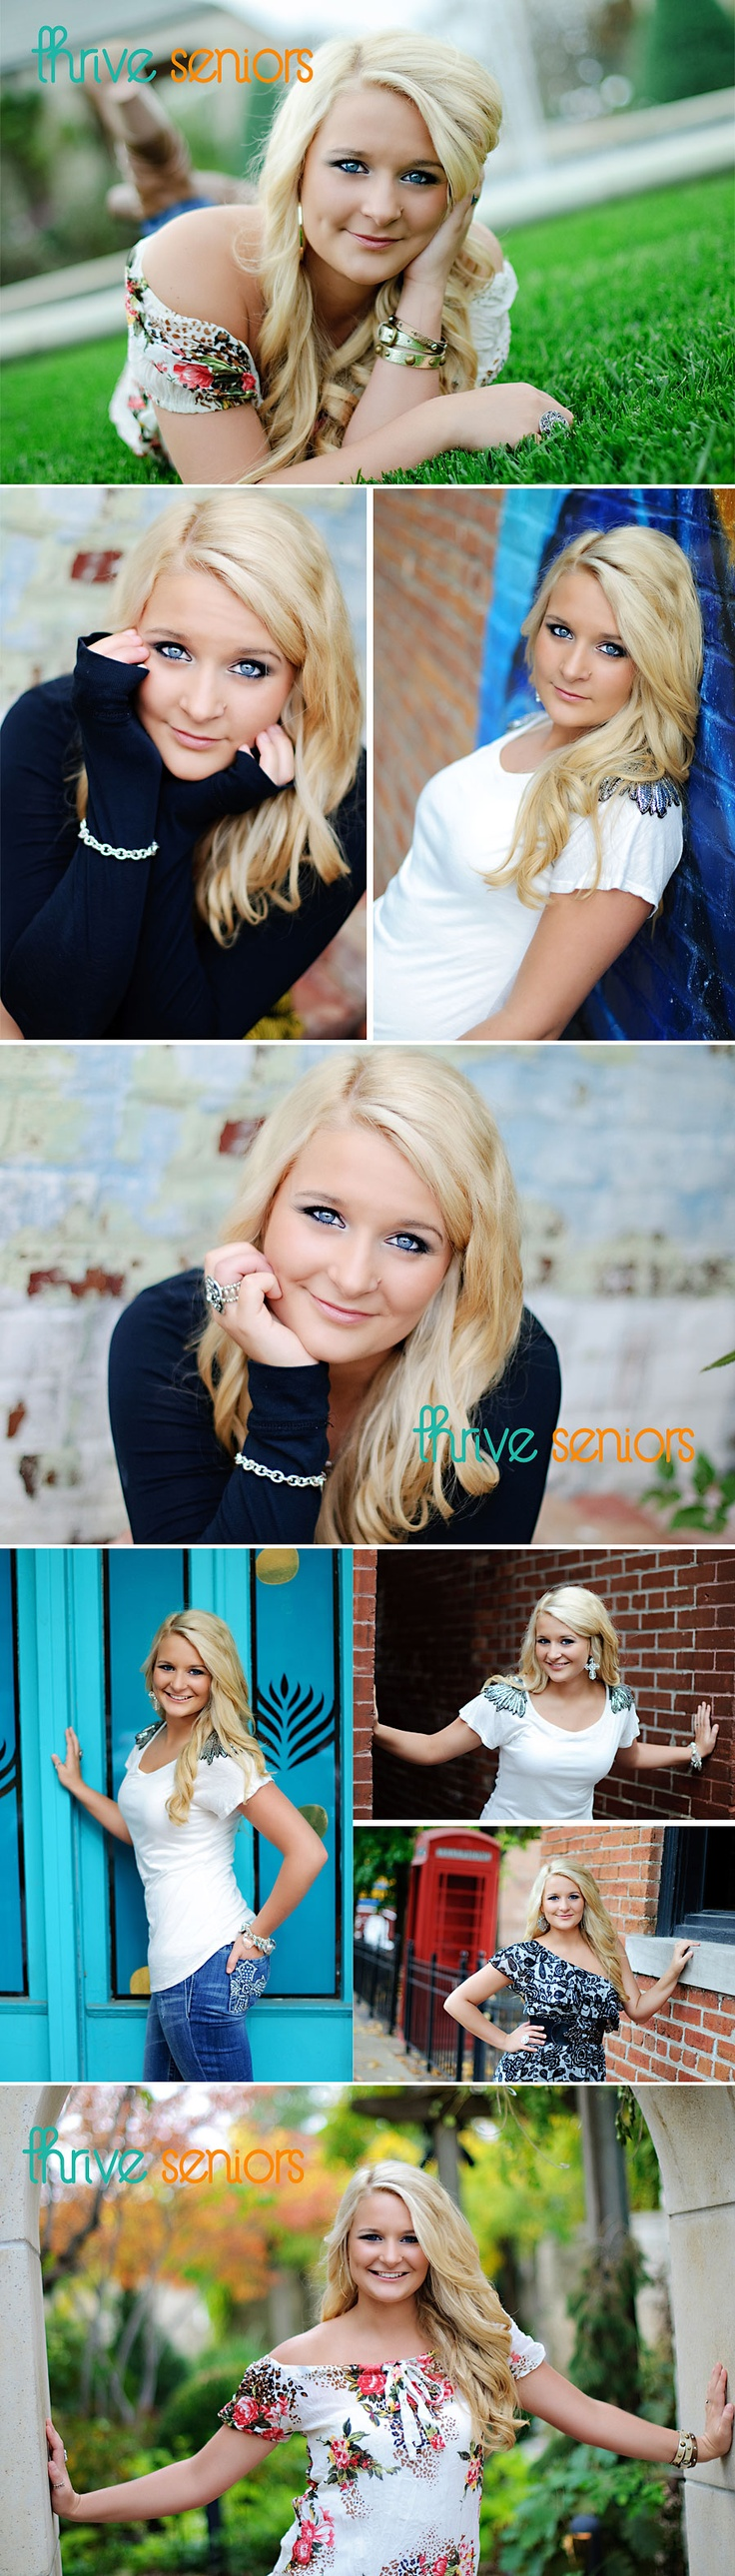 Kansas City High School Senior Photographer | THRIVE SENIORS | ww.thriveseniors.com